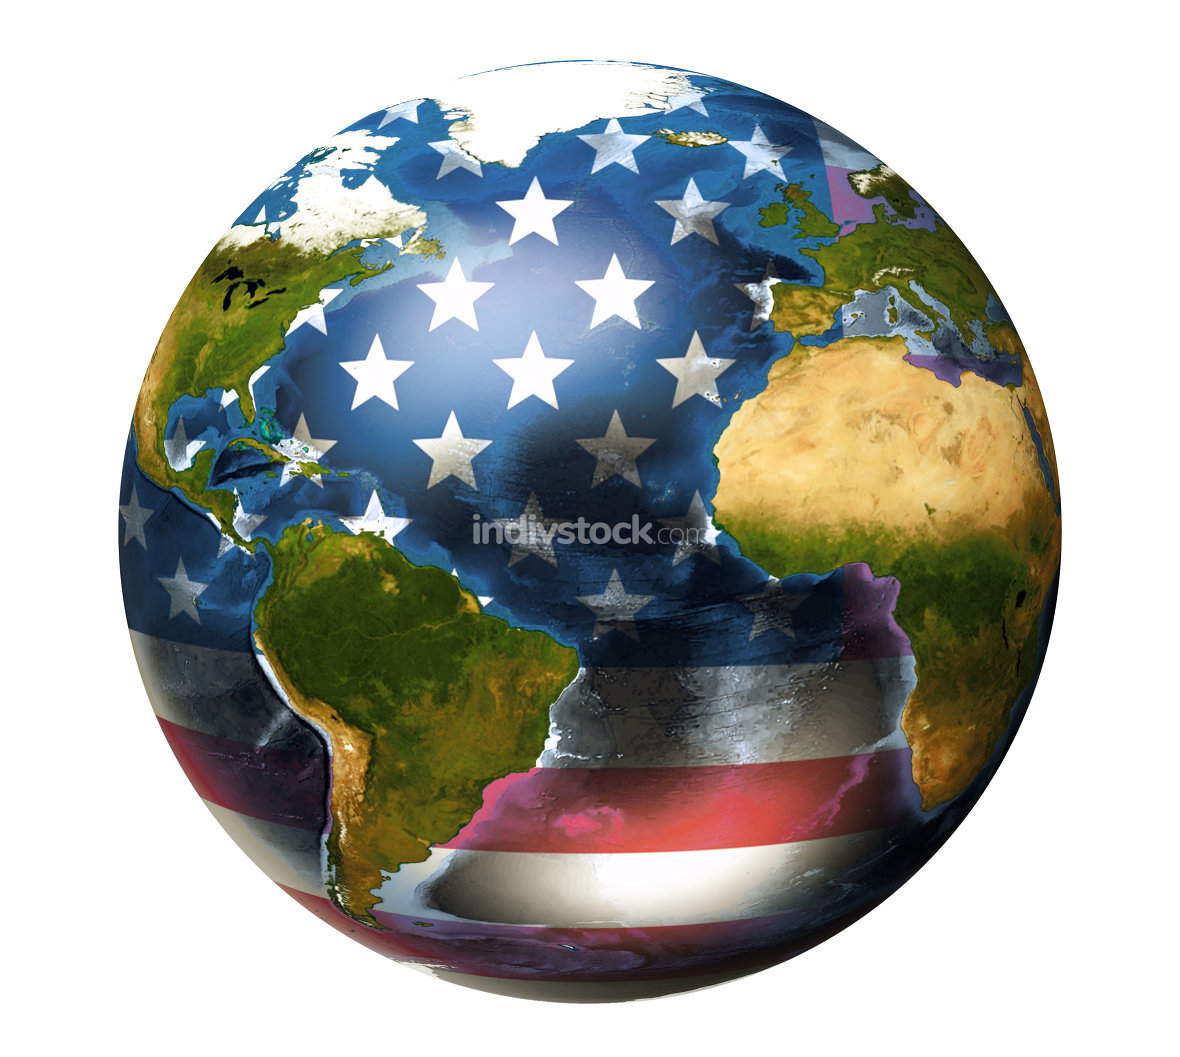 USA flag worldwide global. Elements of this image furnished by NASA.